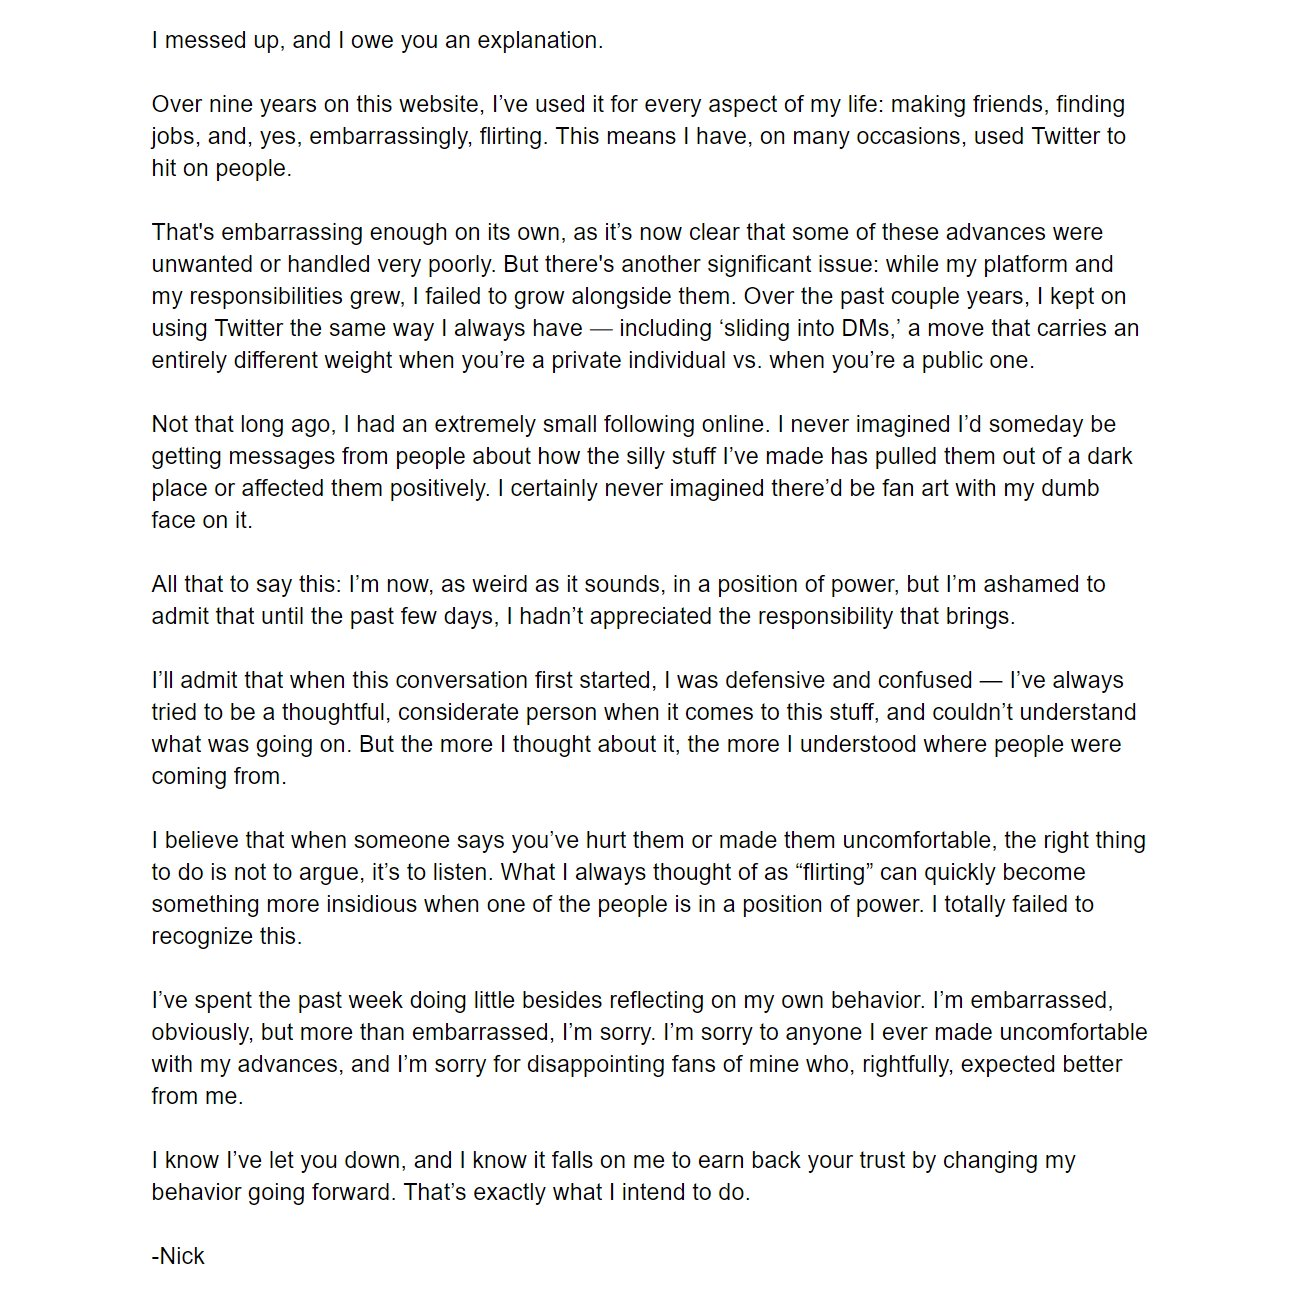 Nick Robinson issued an apology letter regarding the harassment